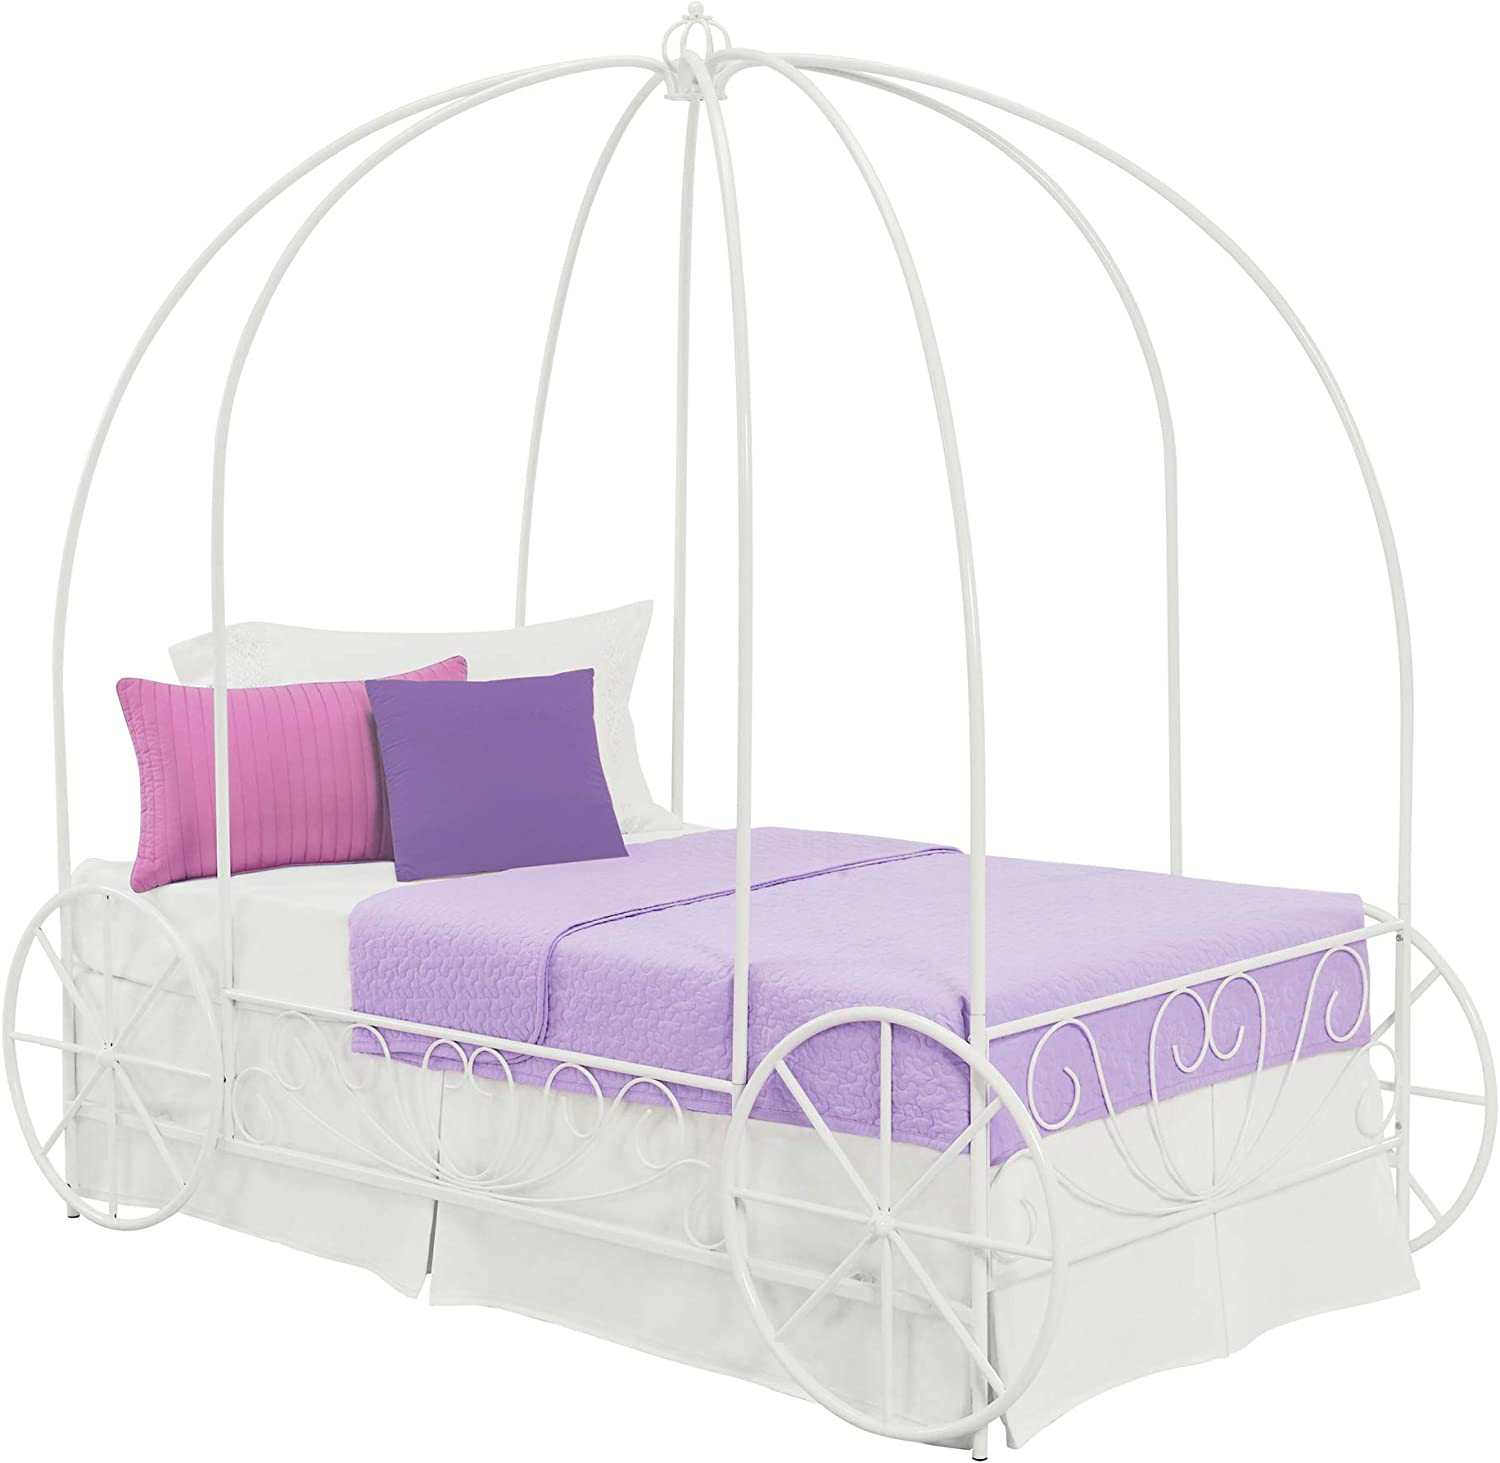 DHP Metal Carriage Large discharge sale Bed Fairy Tale Style Shabby-Chic Max 66% OFF Frame